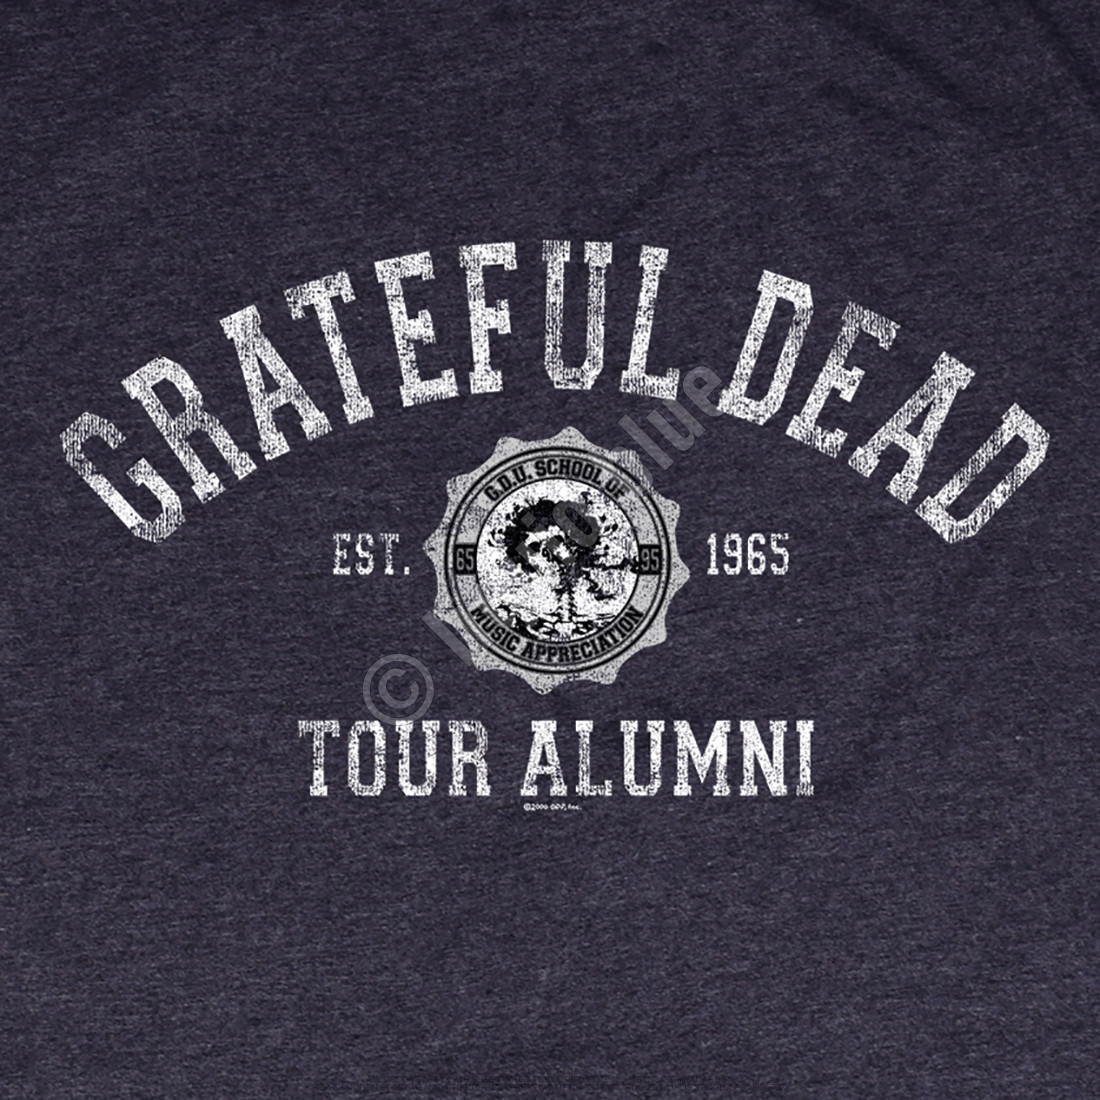 GD Tour Alumni Grey Poly Cotton T-Shirt